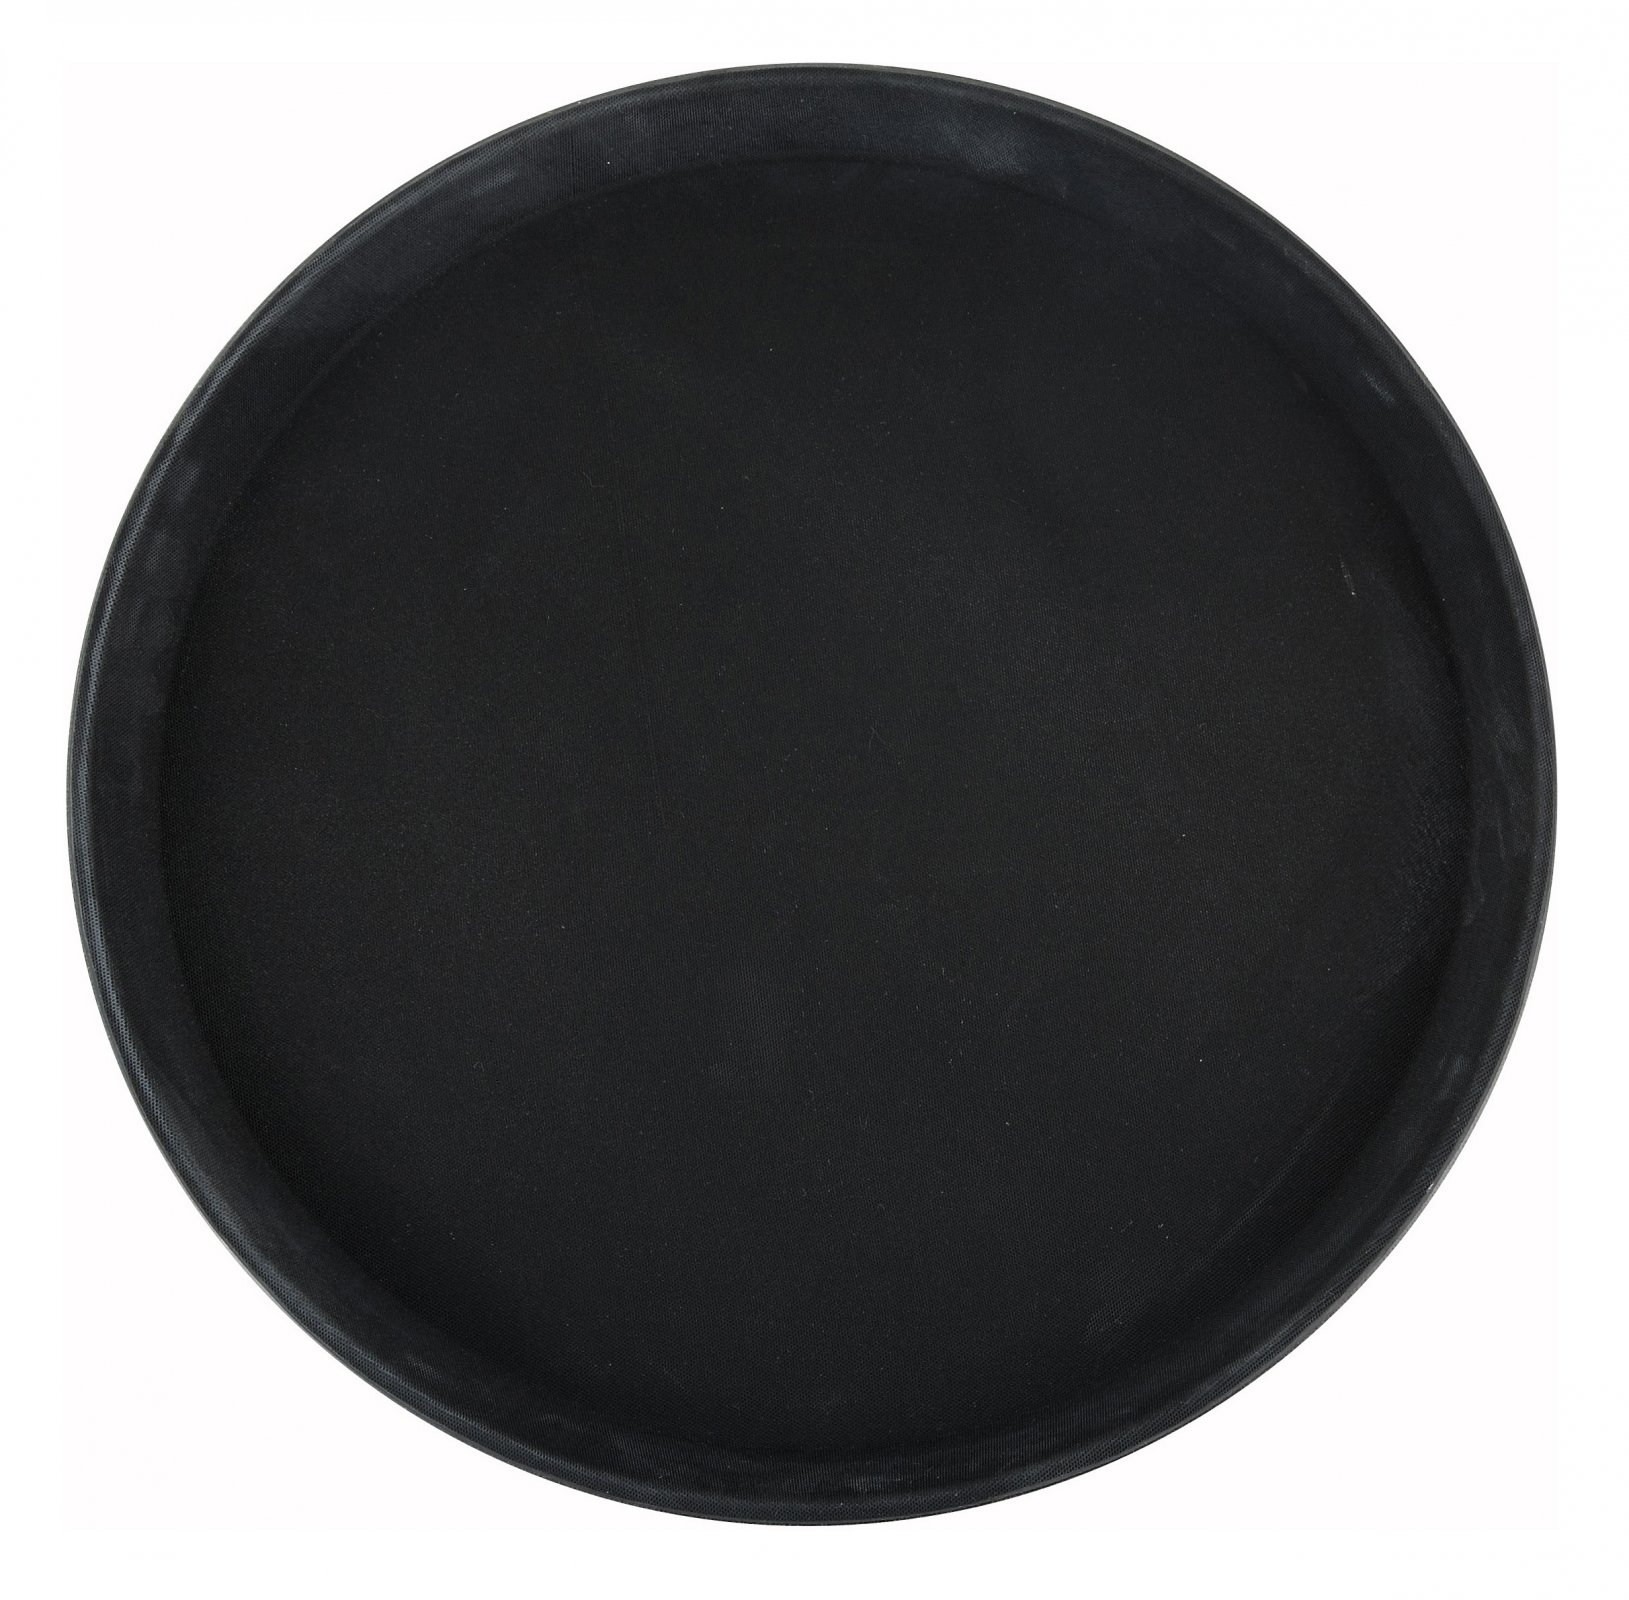 11 Easy Hold Rubber Lined Tray, Black, Round